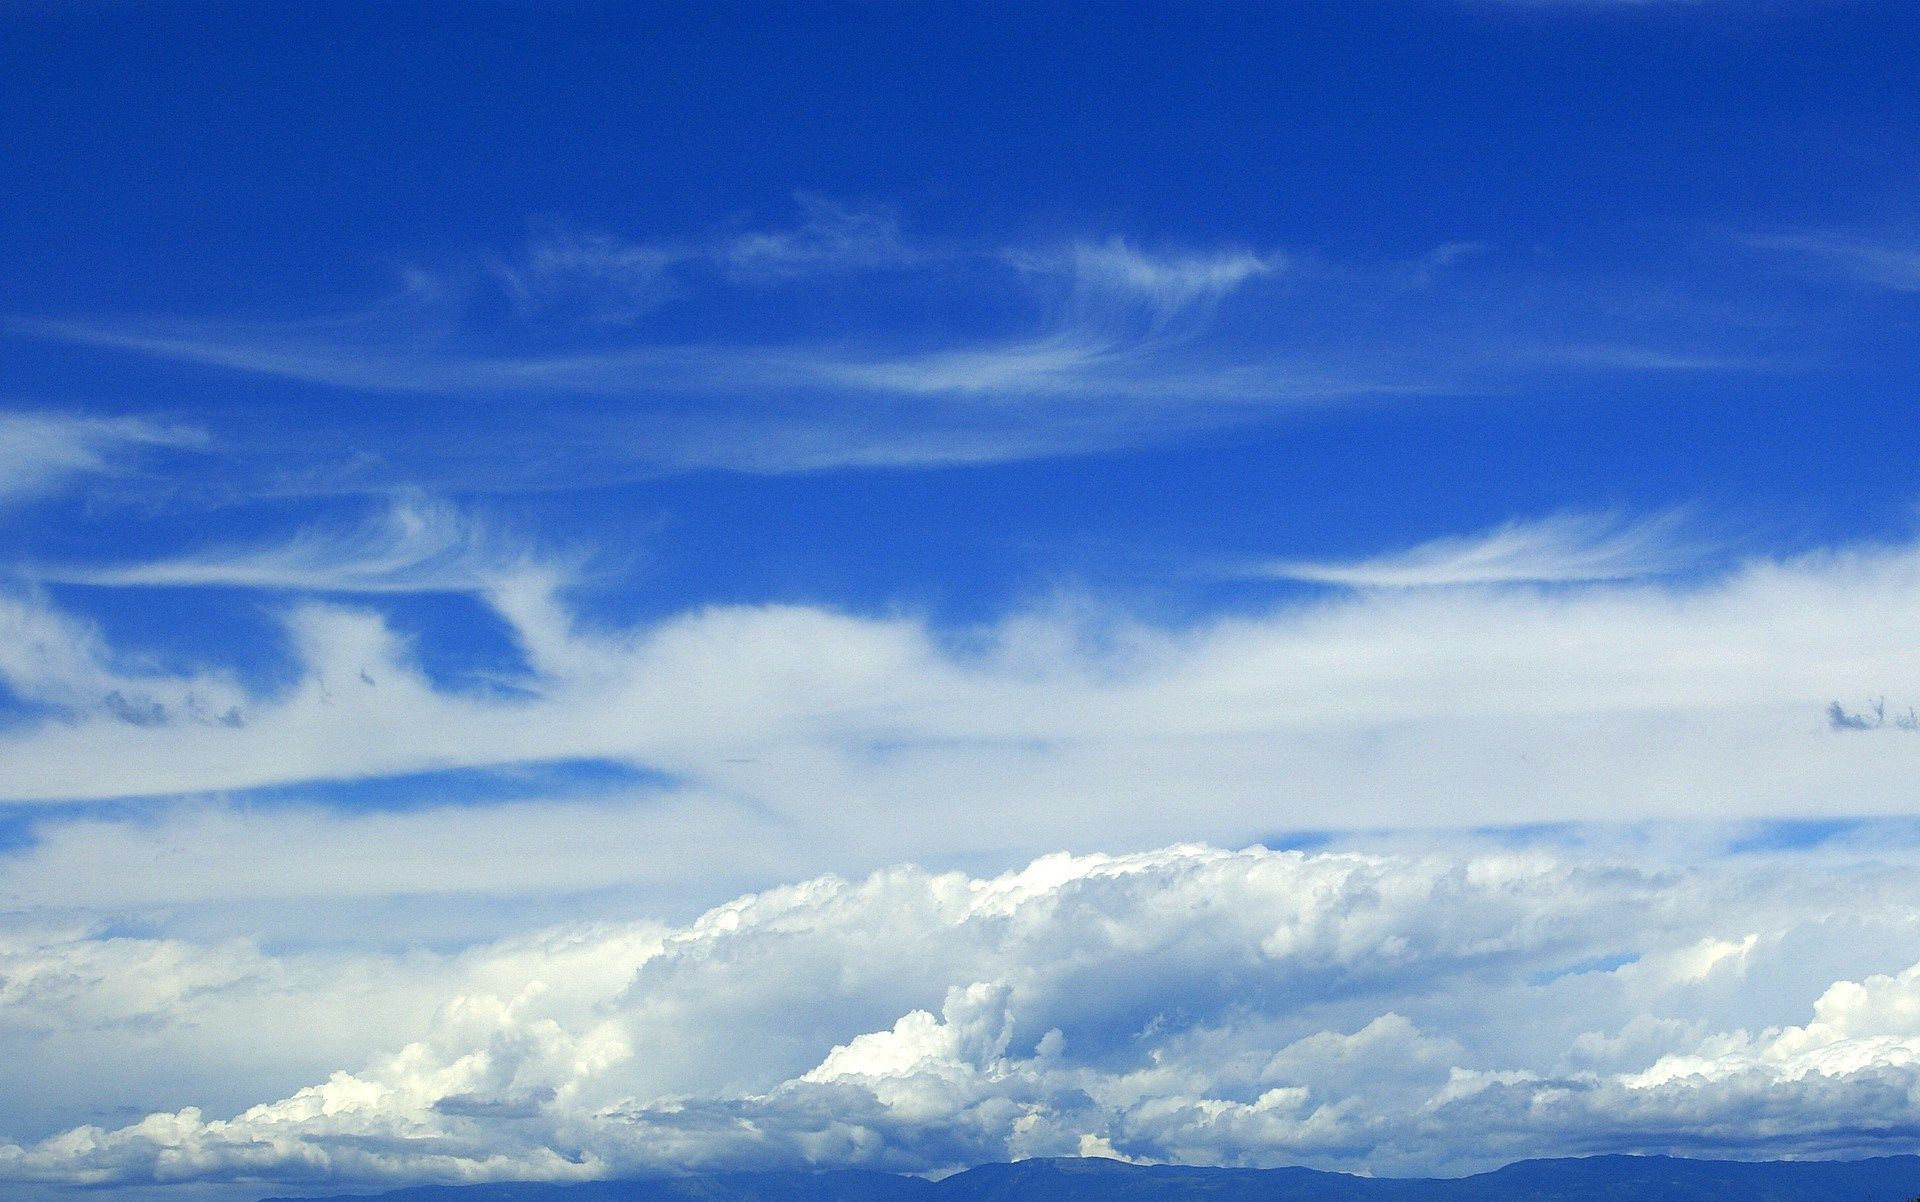 Sky Wallpaper Pack 1080p Hd Clouds Sky Images Blue Sky Clouds